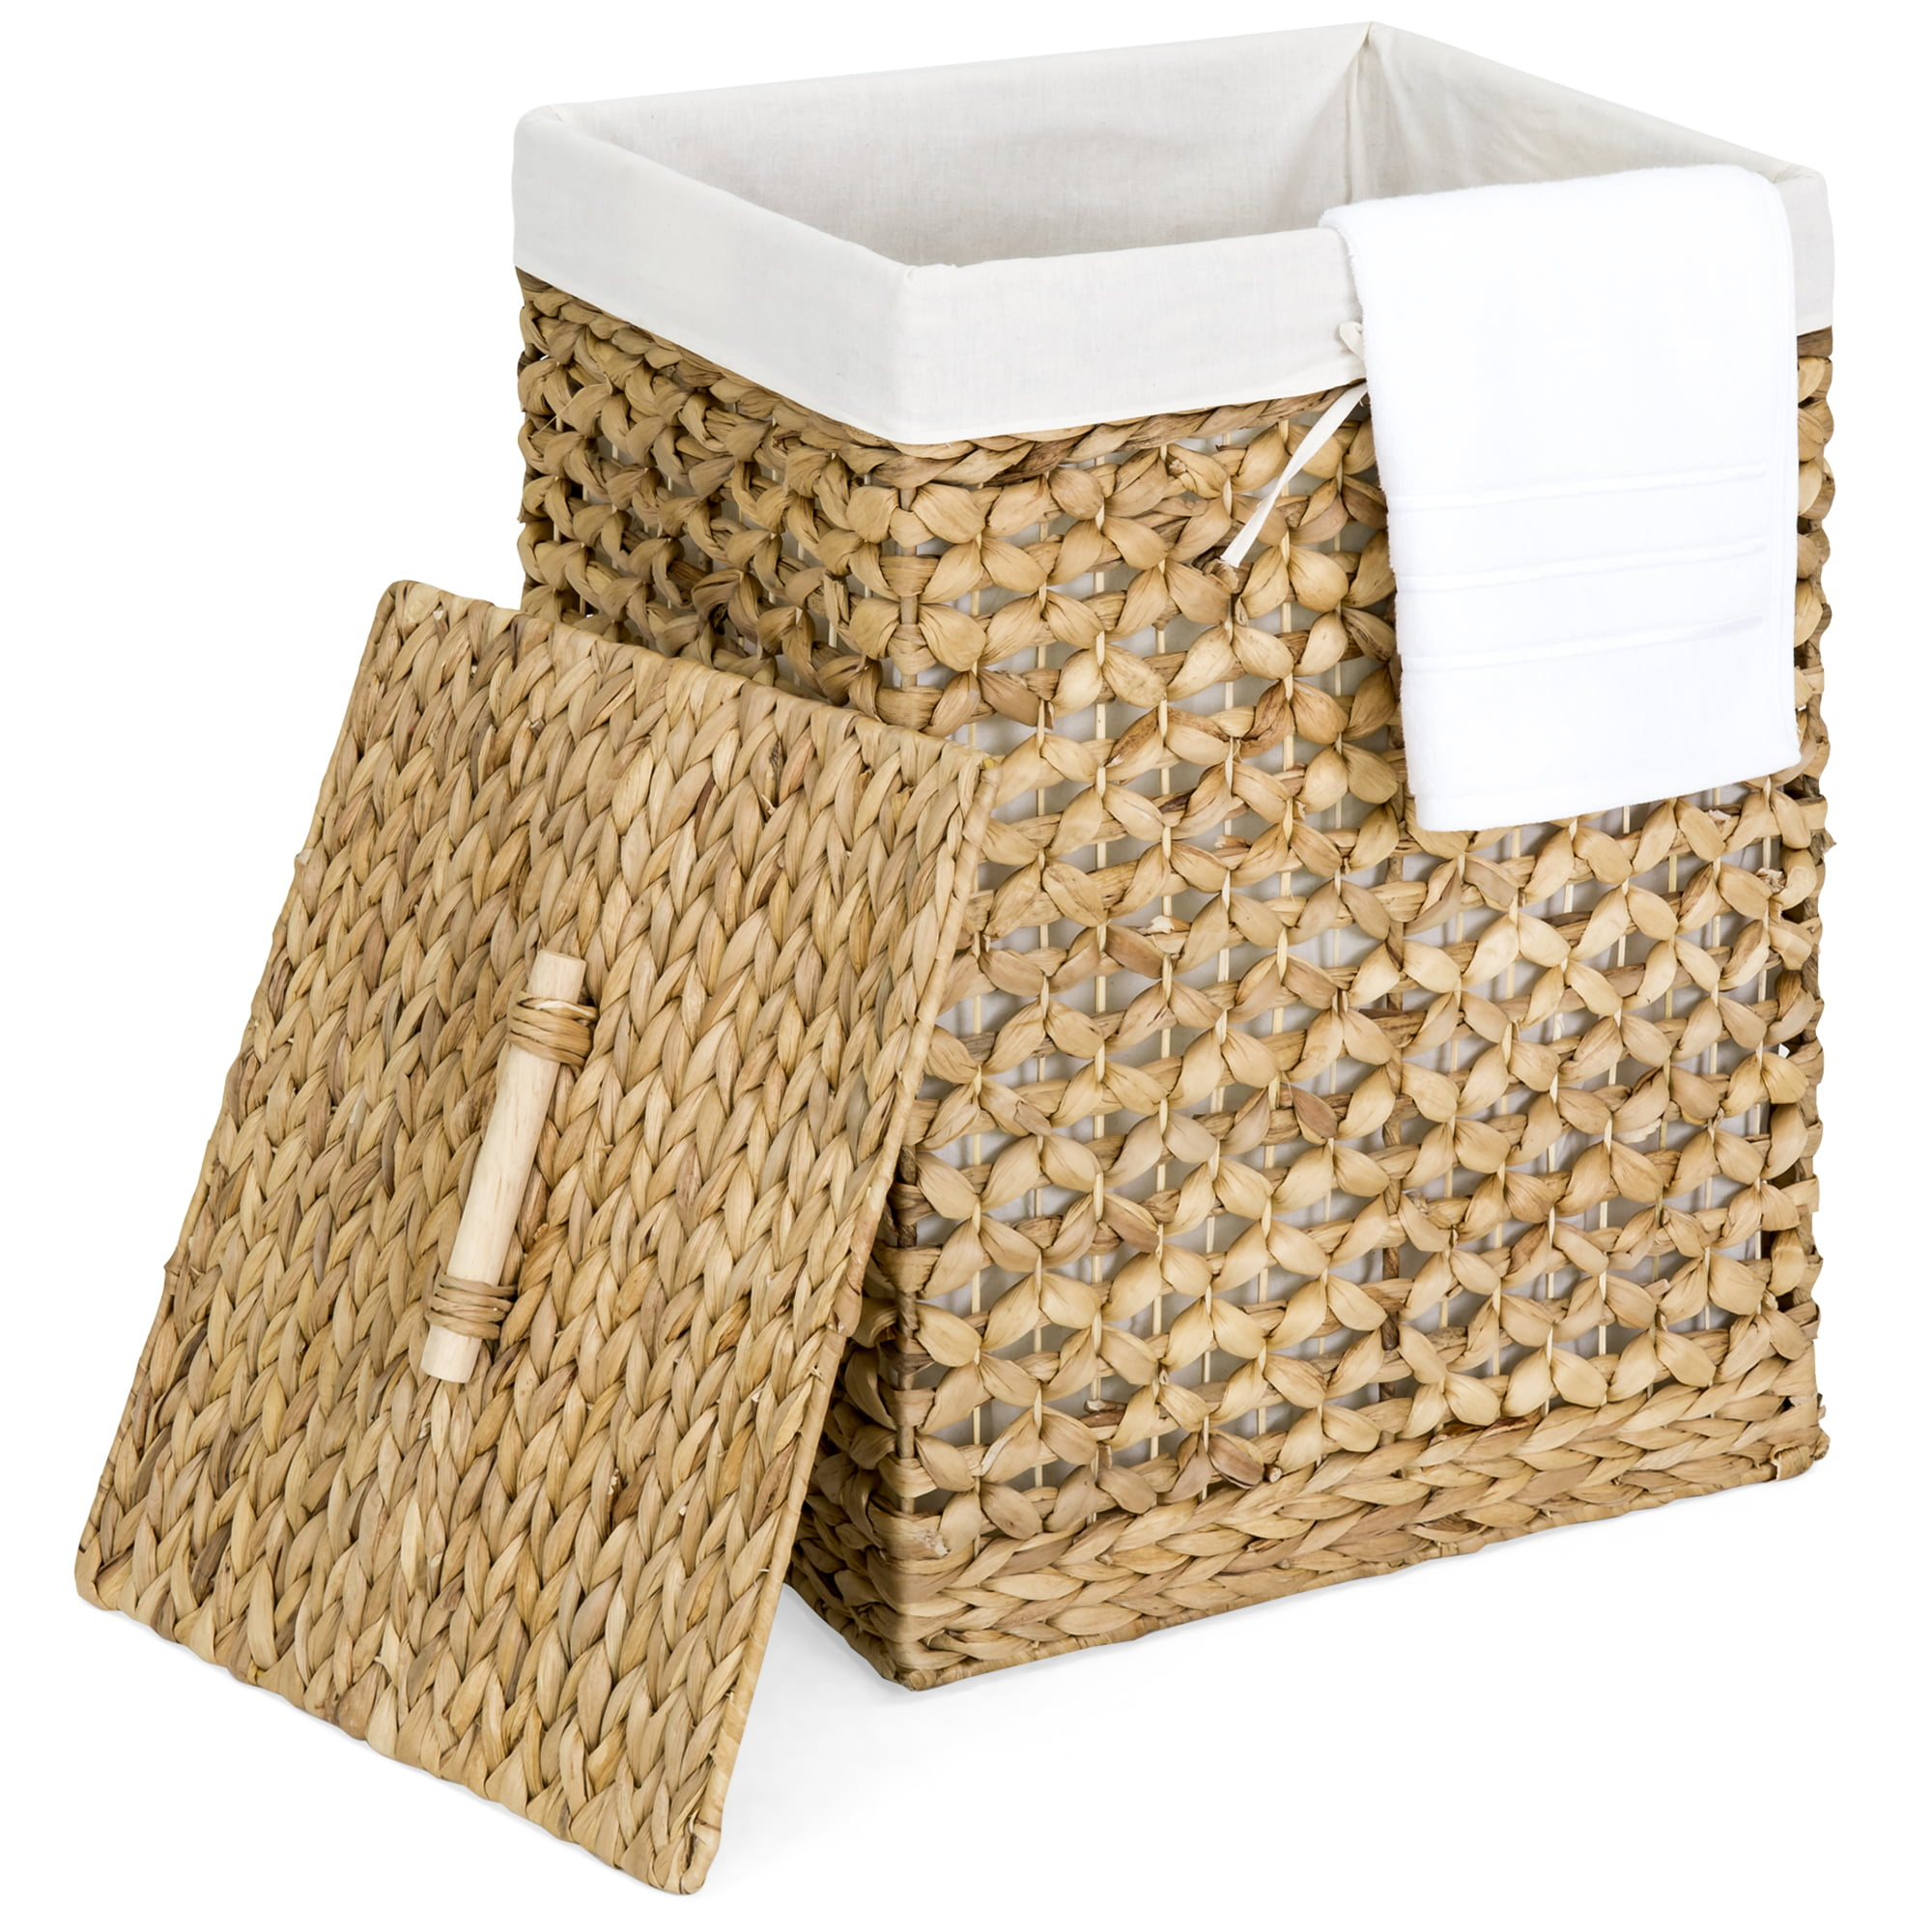 Best Choice Products Decorative Woven Water Hyacinth Wicker Laundry Clothes Hamper Basket W Liner Lid Natural Walmart Com Walmart Com